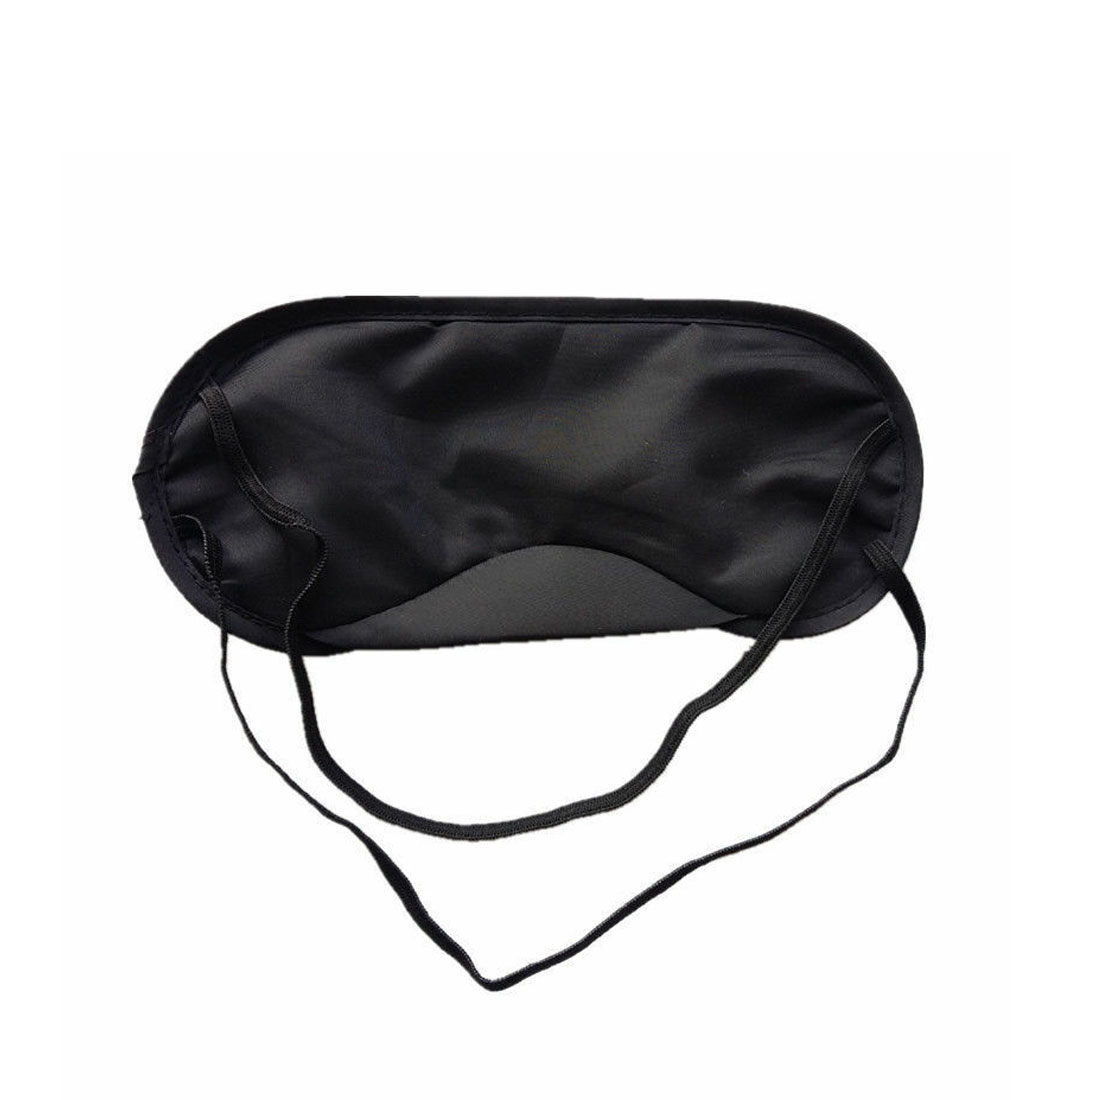 1pcs Pure Silk Sleep Eye Mask Padded Shade Cover Travel Relax Aid Non-woven Sleep eye mask 1